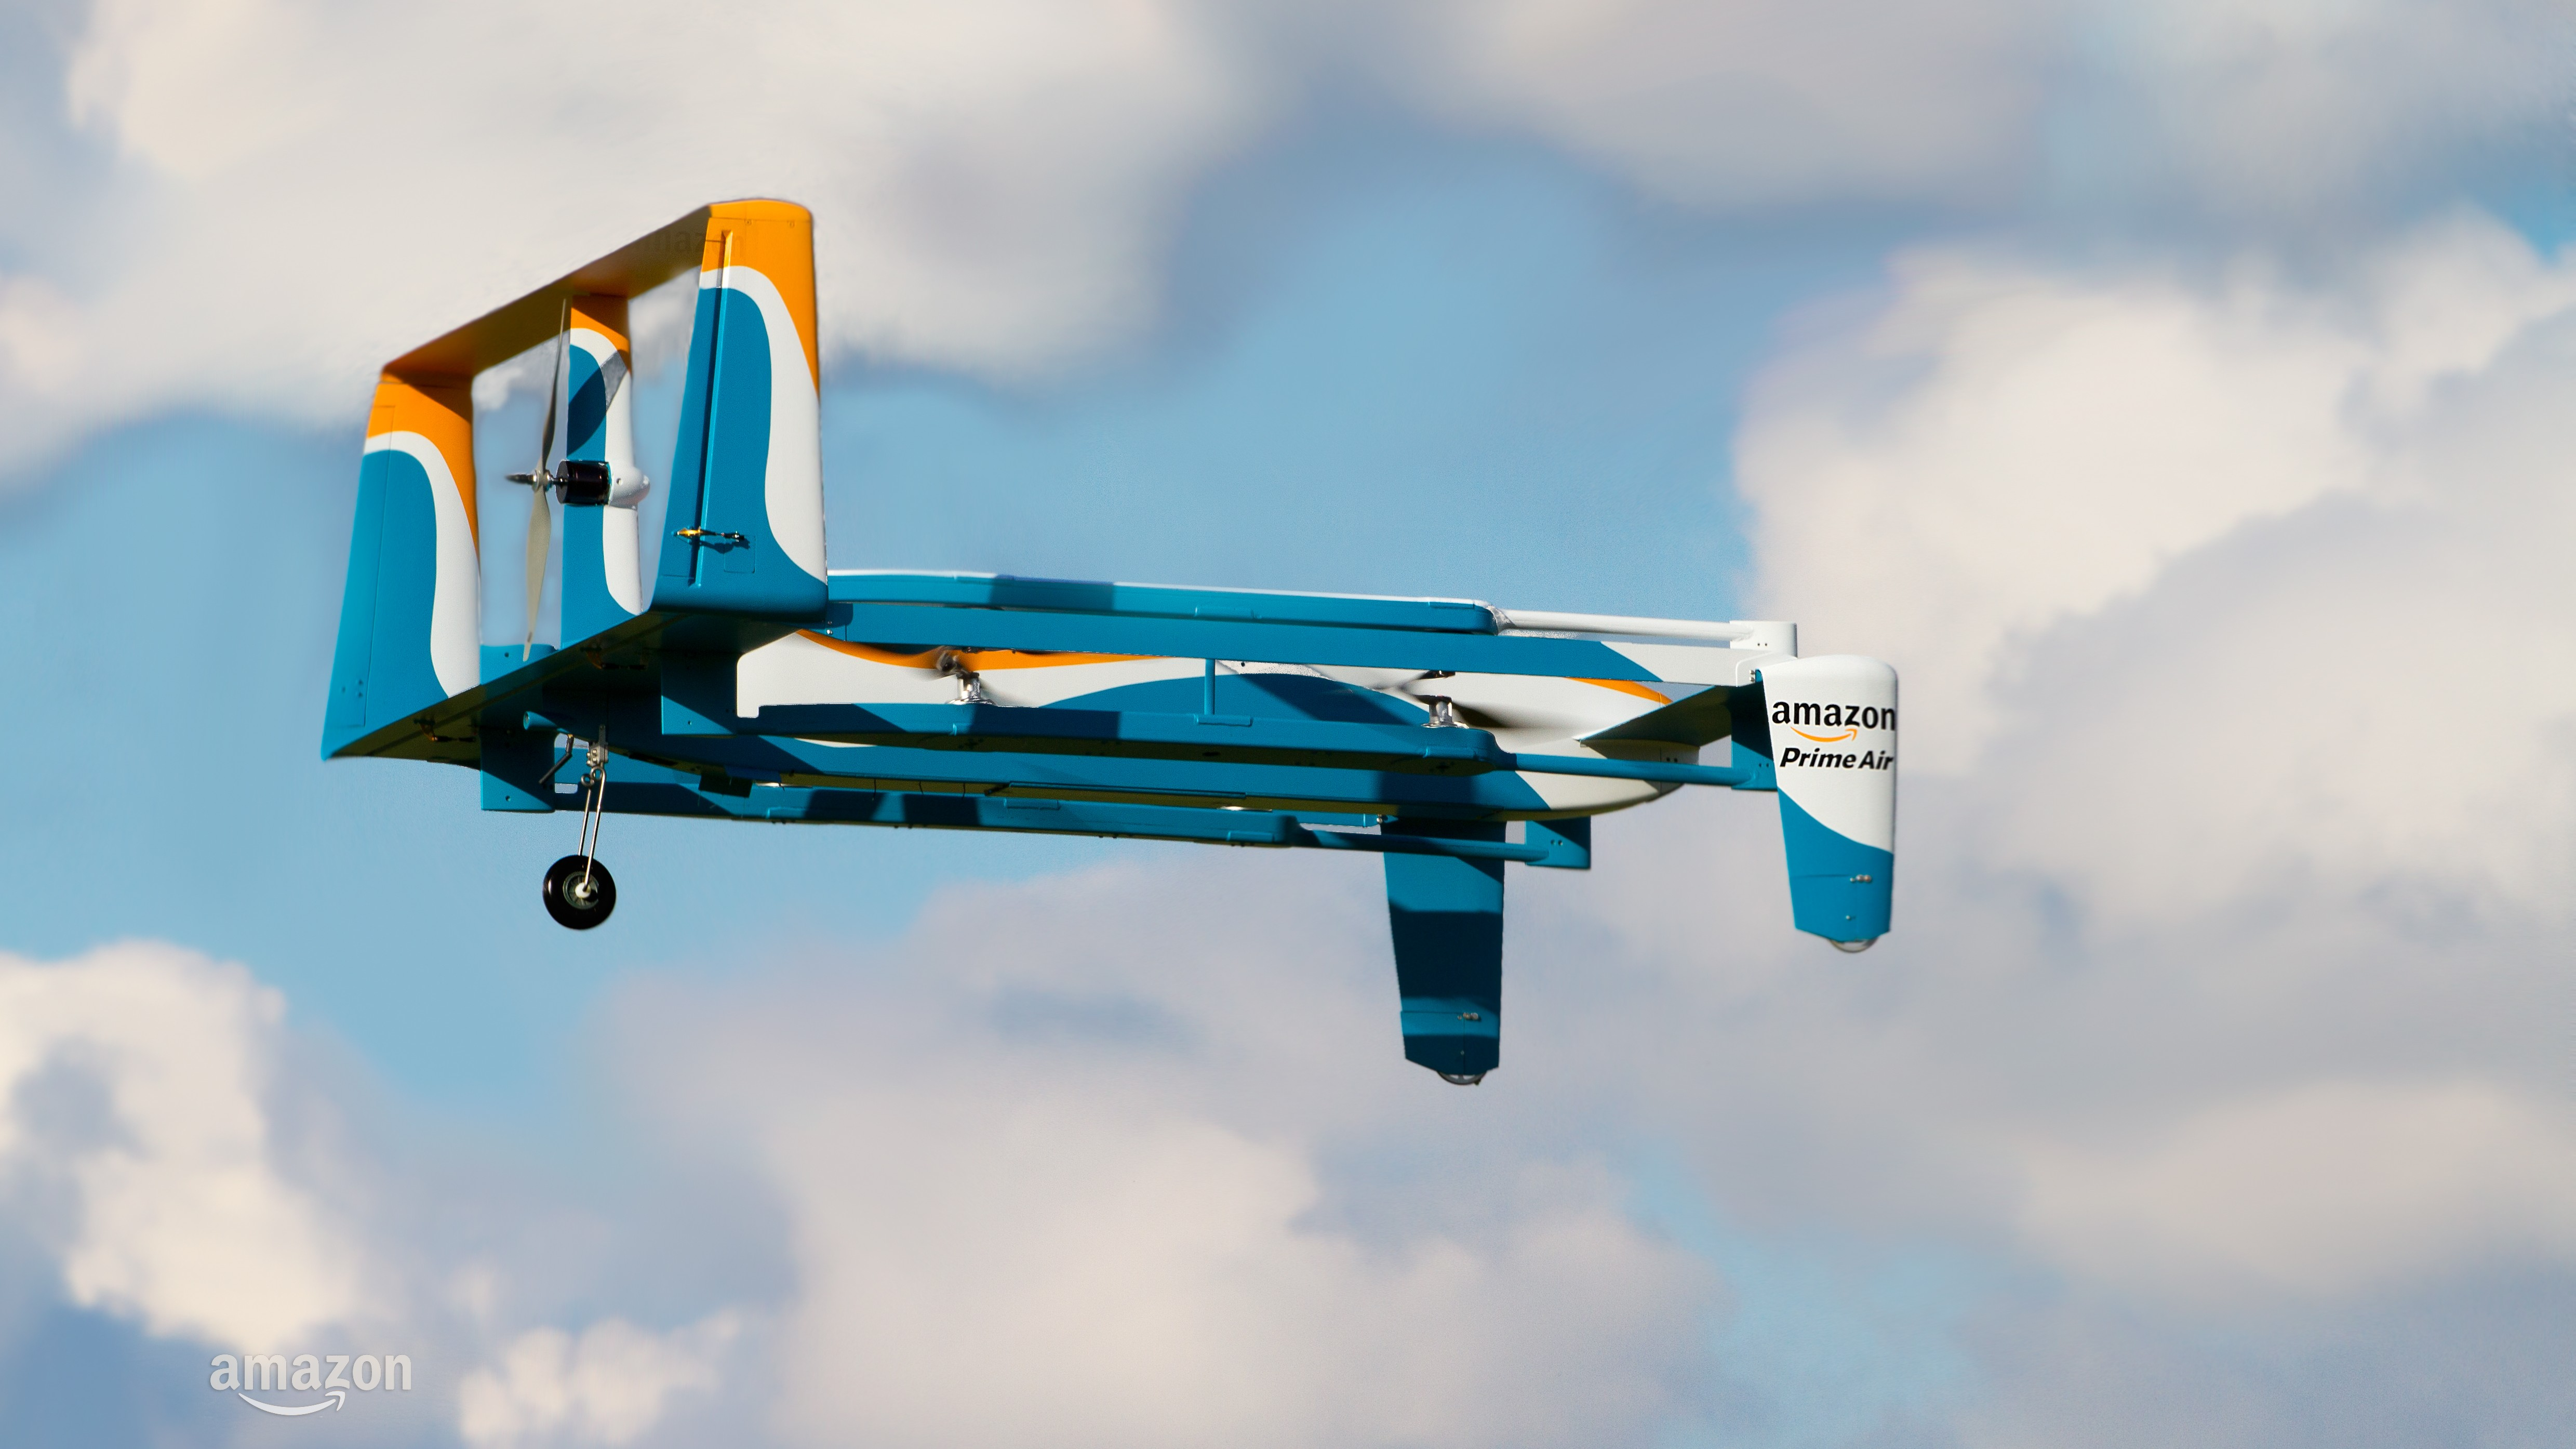 Amazon's Delivery Drones May Face New Regulatory Roadblocks